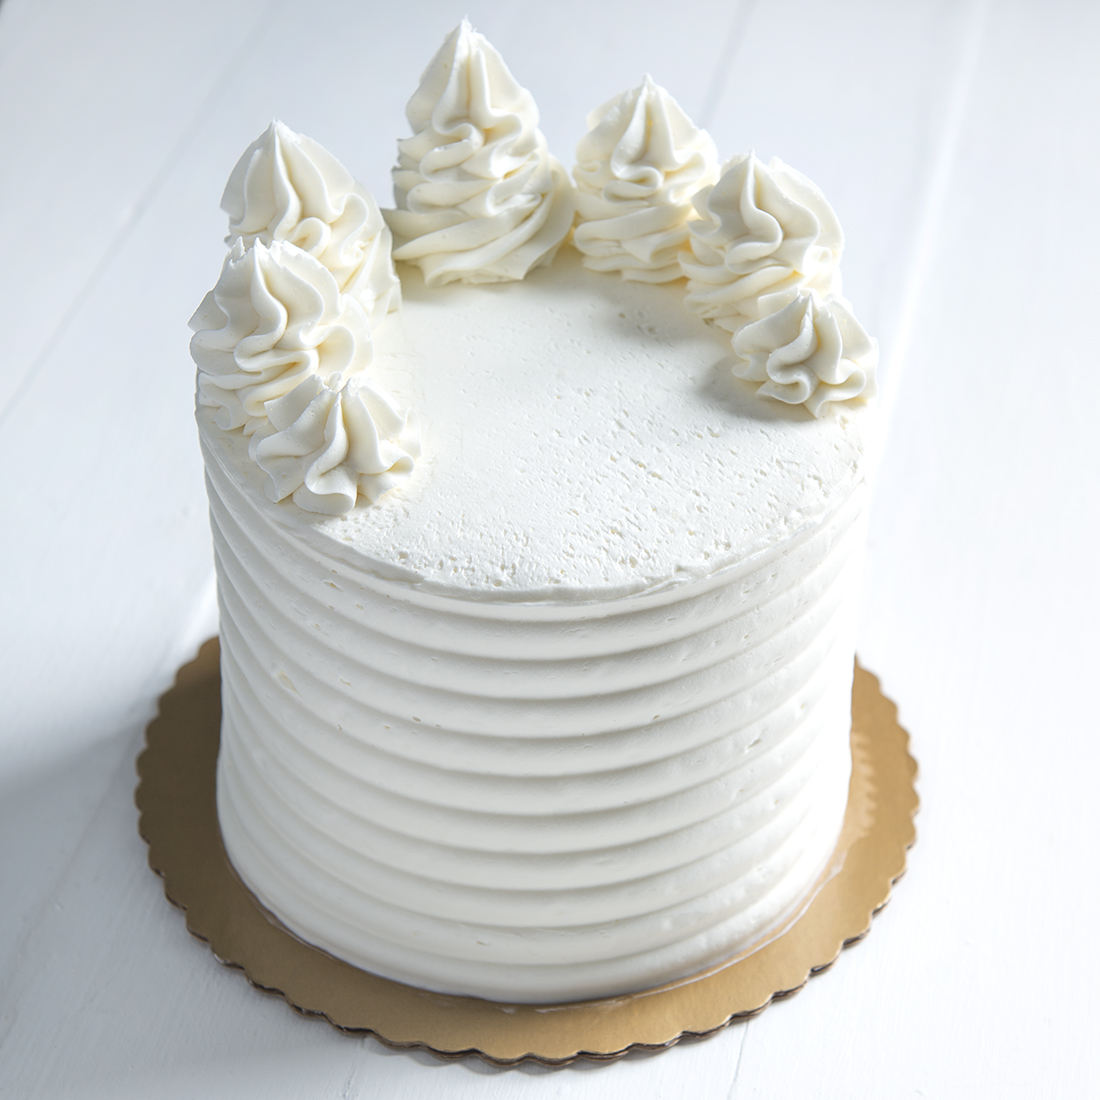 "Gluten Free Friendly Simply Vanilla - Vanilla cake filled and frosted with vanilla buttercream6"" $40 9"" 55 10"" 70 12"" 90"